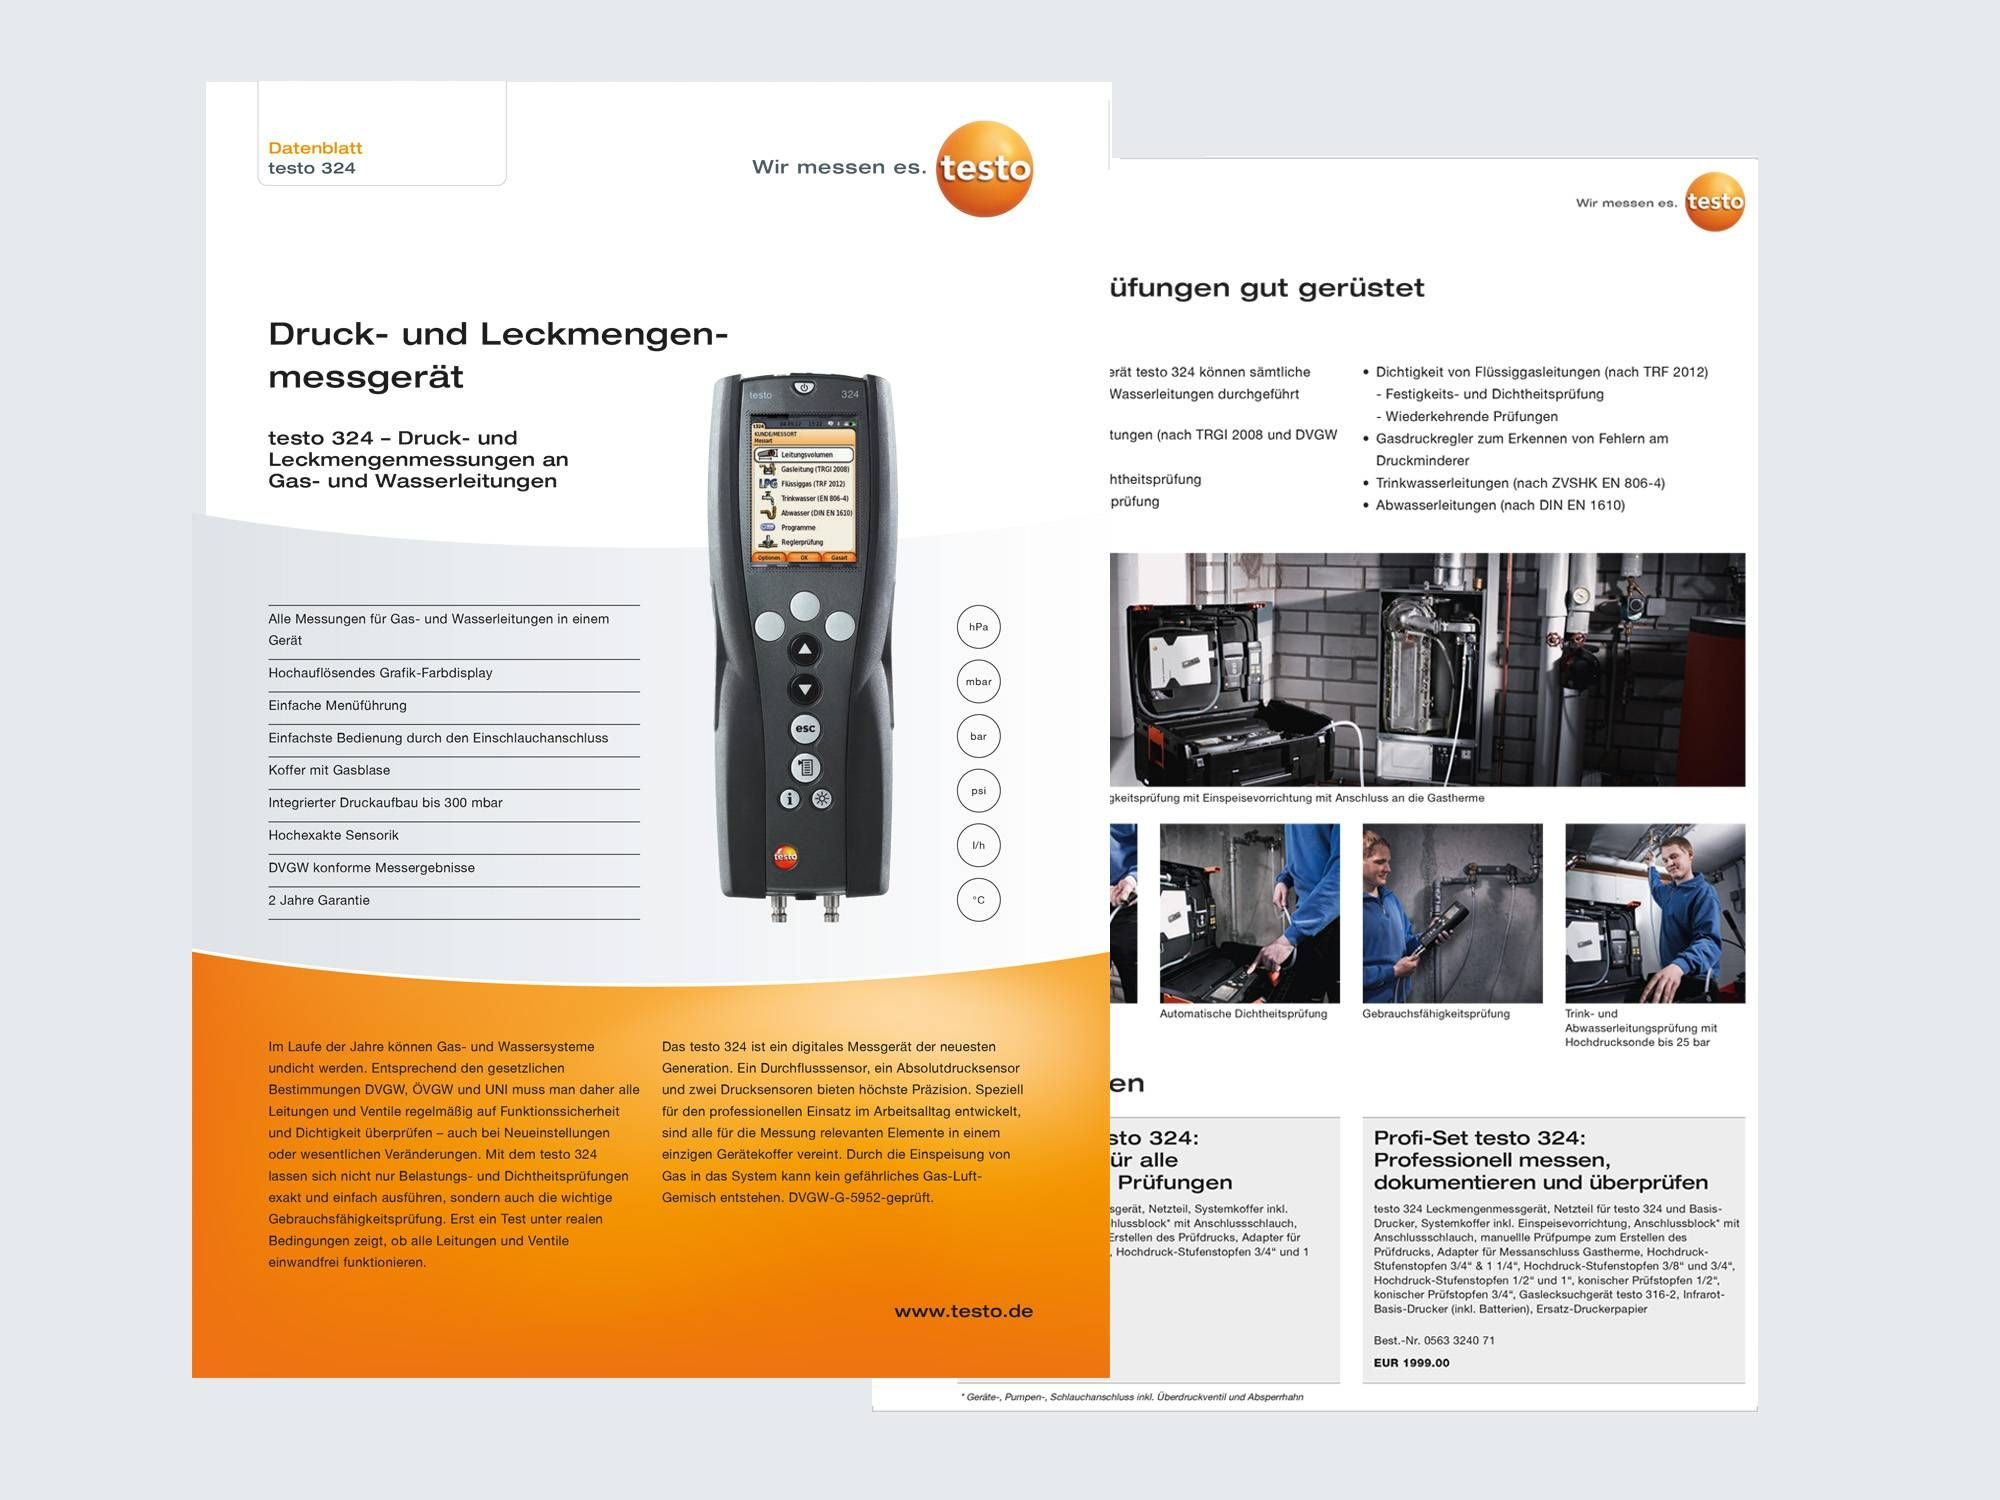 infopaket-messe-testo-324-download-vorschau.jpg